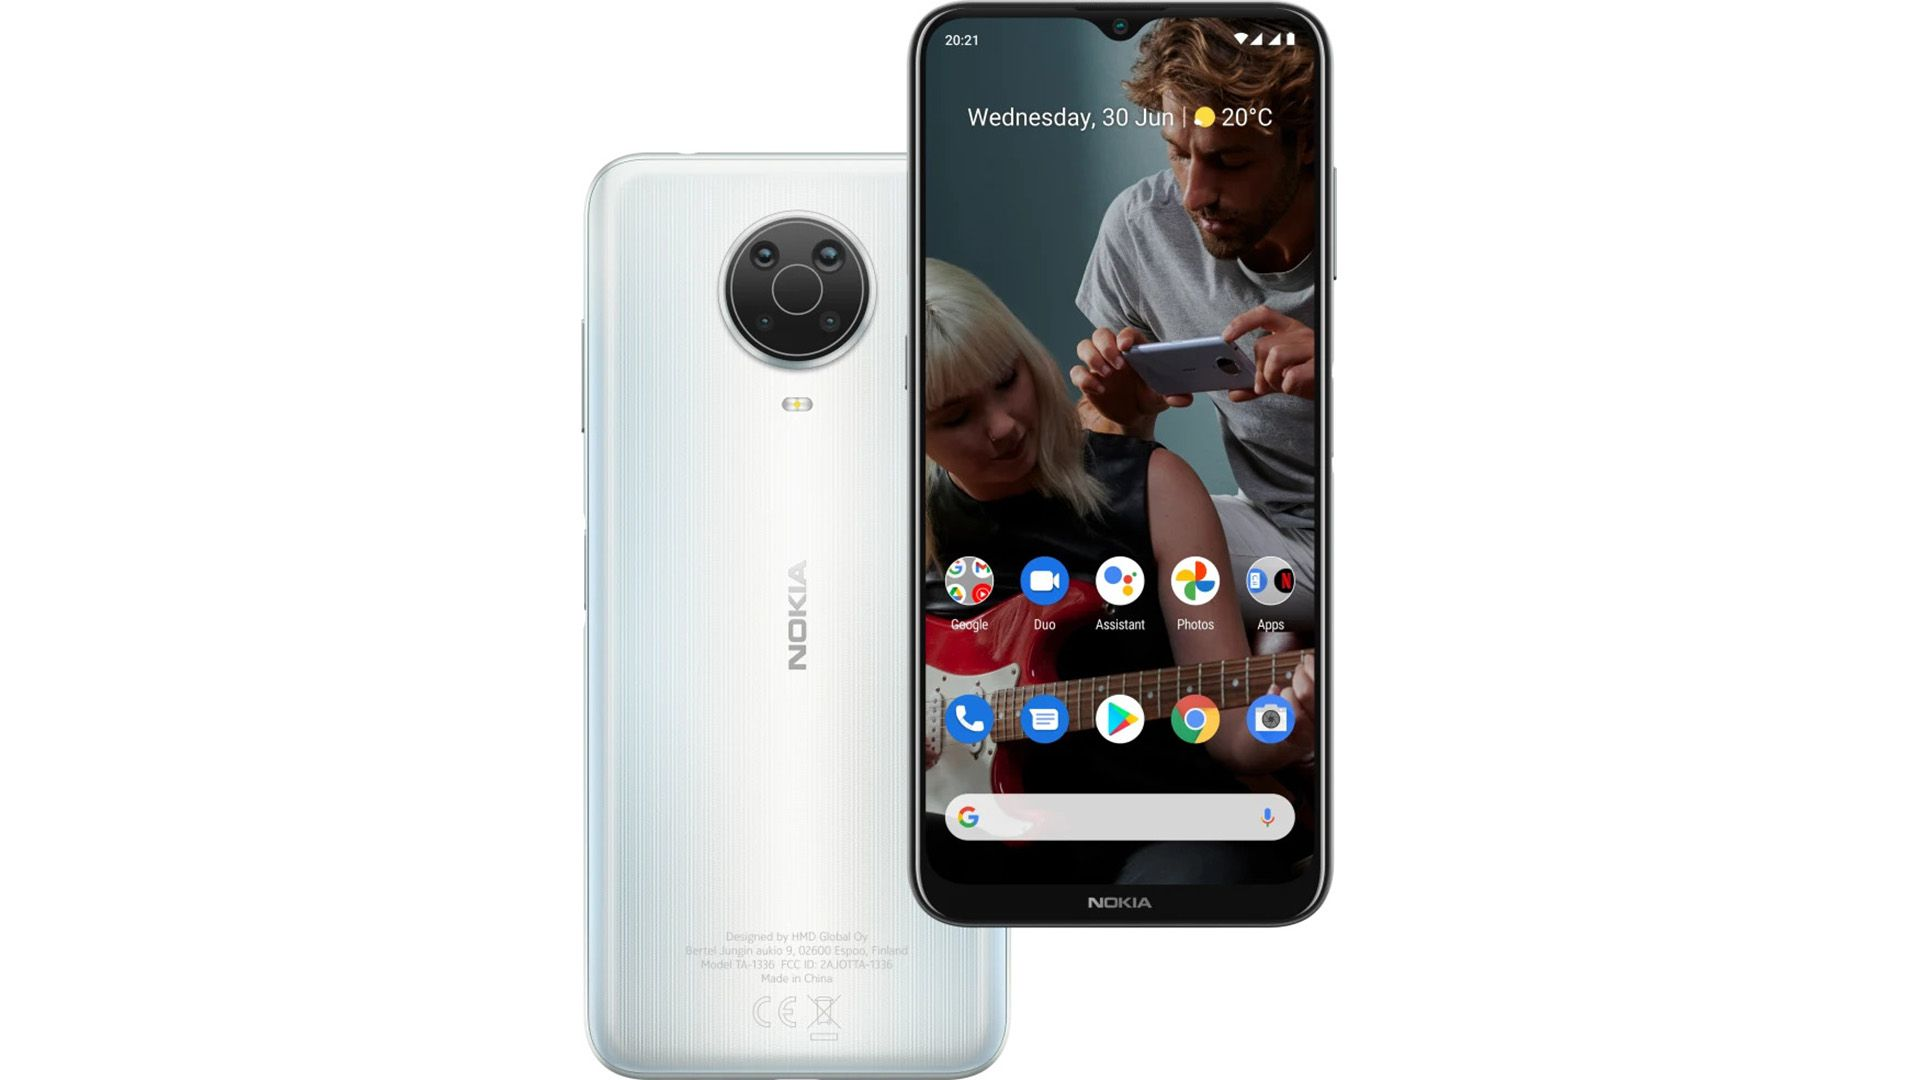 Nokia G20 android smartphone